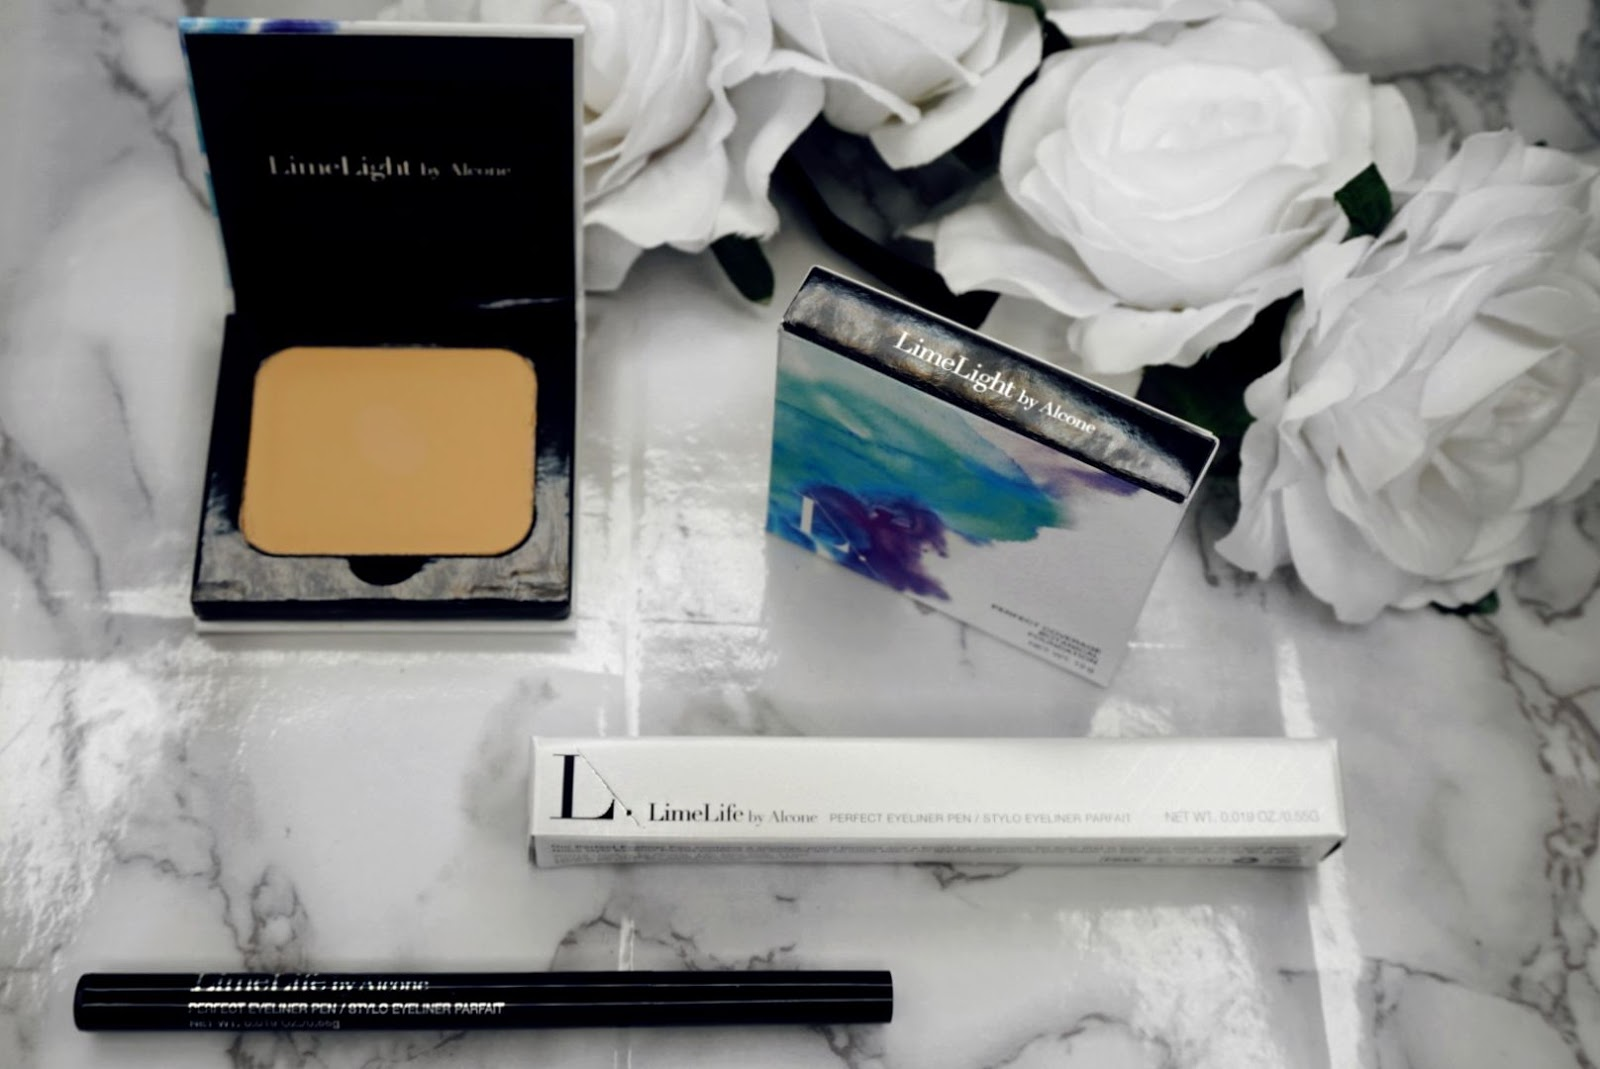 EXCLUSIVE UK RELEASE BY LIME LIFE BY ALCONE THE PROFESSIONAL MAKEUP TYCOON